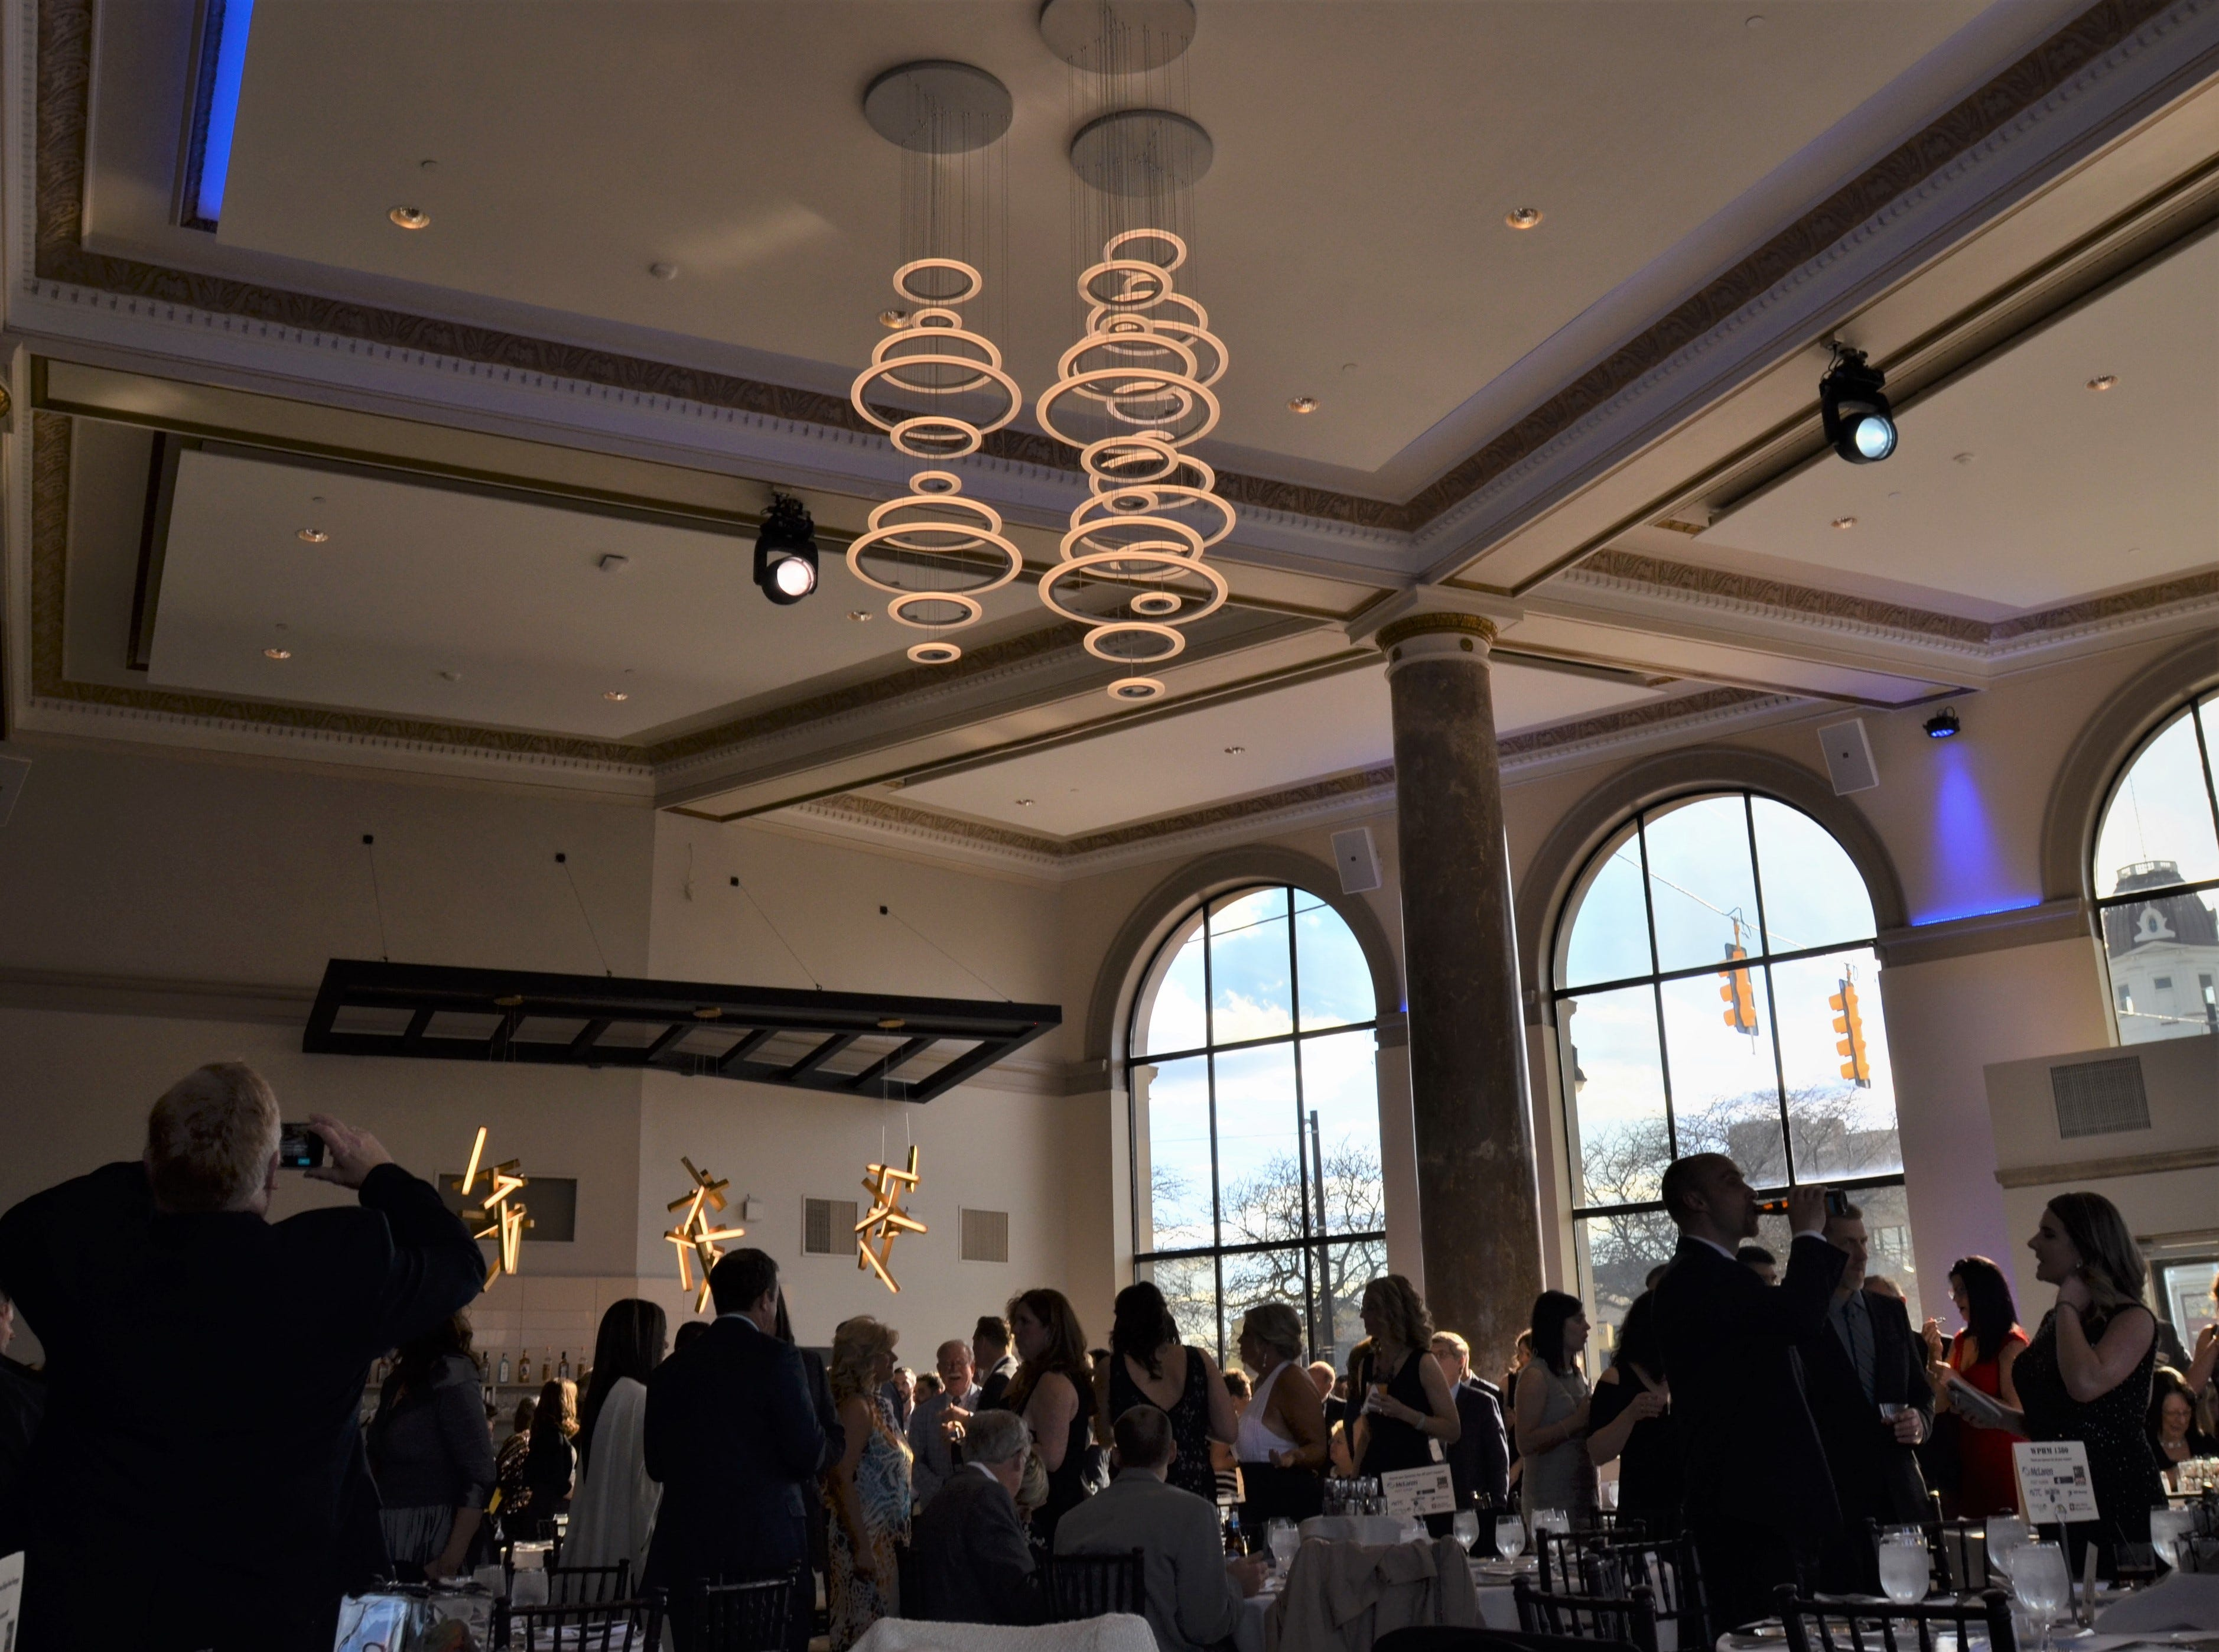 A man takes a photo of the debuting ballroom in the CityFlats Hotel on Friday, May 10, 2019. The venue features hanging light fixtures and colored lighting that can be changed for events.